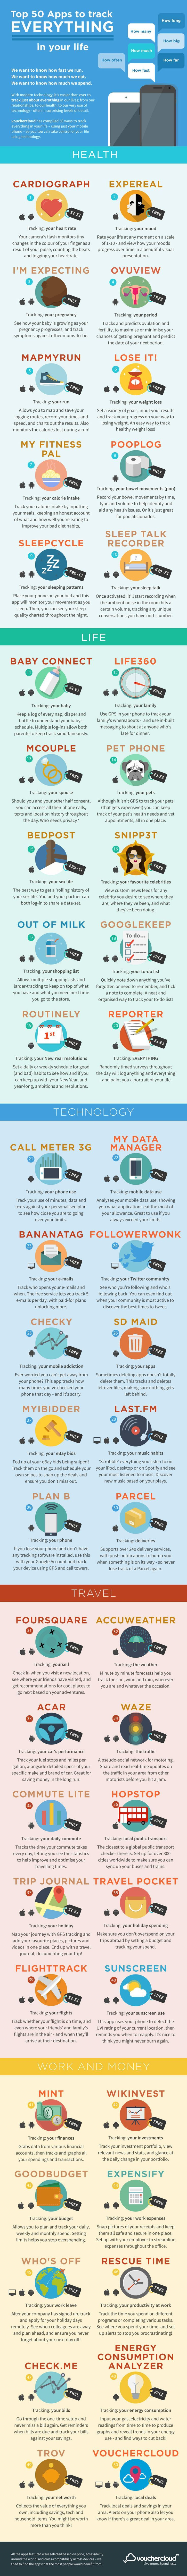 Top+50+Apps+to+Track+Everything+in+Your+Life+#infographic+~+Visualistan